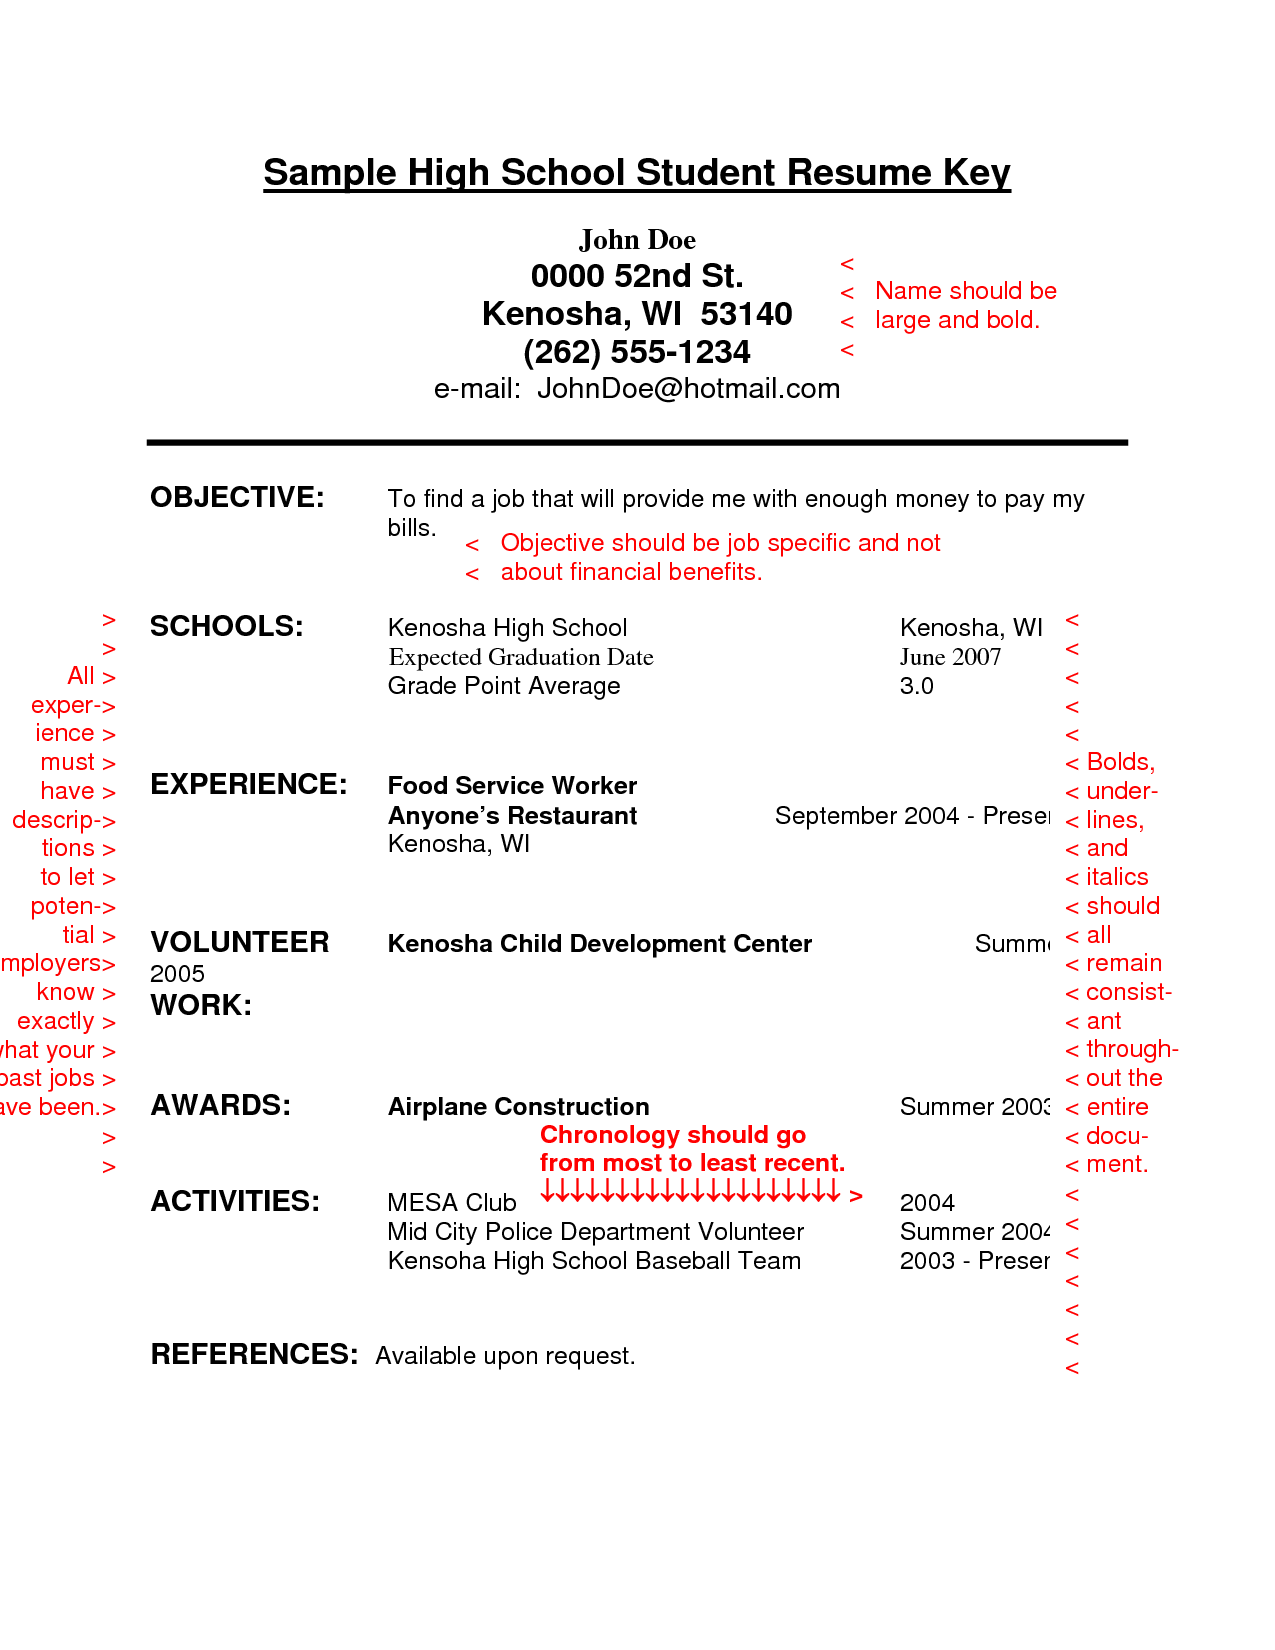 resume sample for high school students with no experience httpwww - Cover Letters For High School Students With No Experience